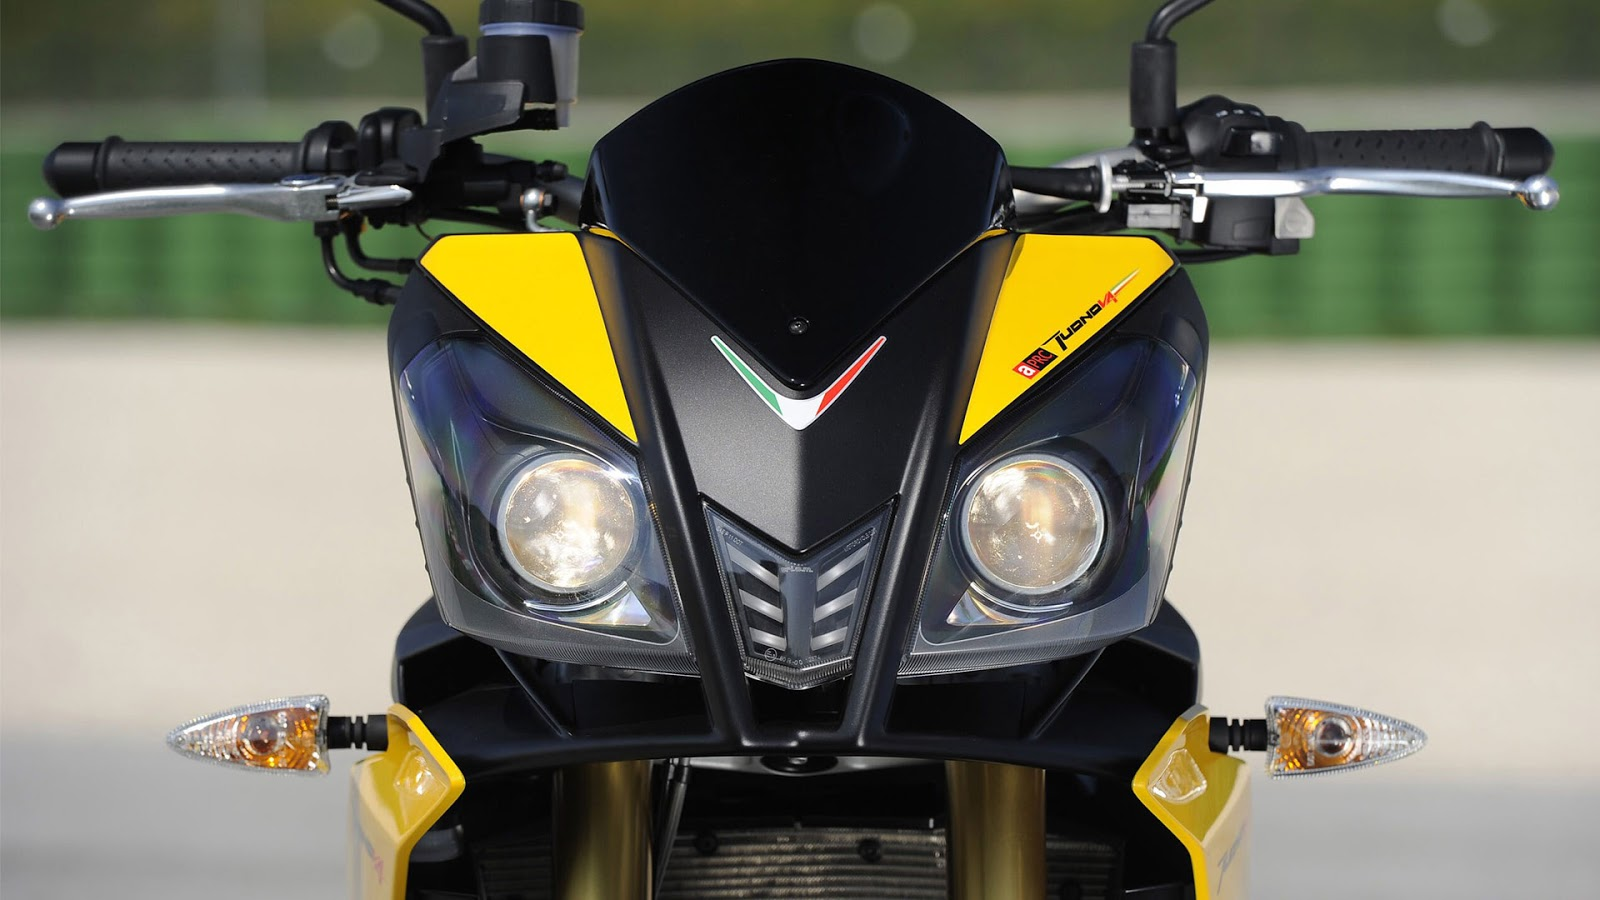 http://2.bp.blogspot.com/-gWh2zS97owE/UP6Pr2vPXrI/AAAAAAAAe5U/tWavg7RBYhU/s1600/Aprilia+Tuono+v4+Full+HD+wallpapers.jpg